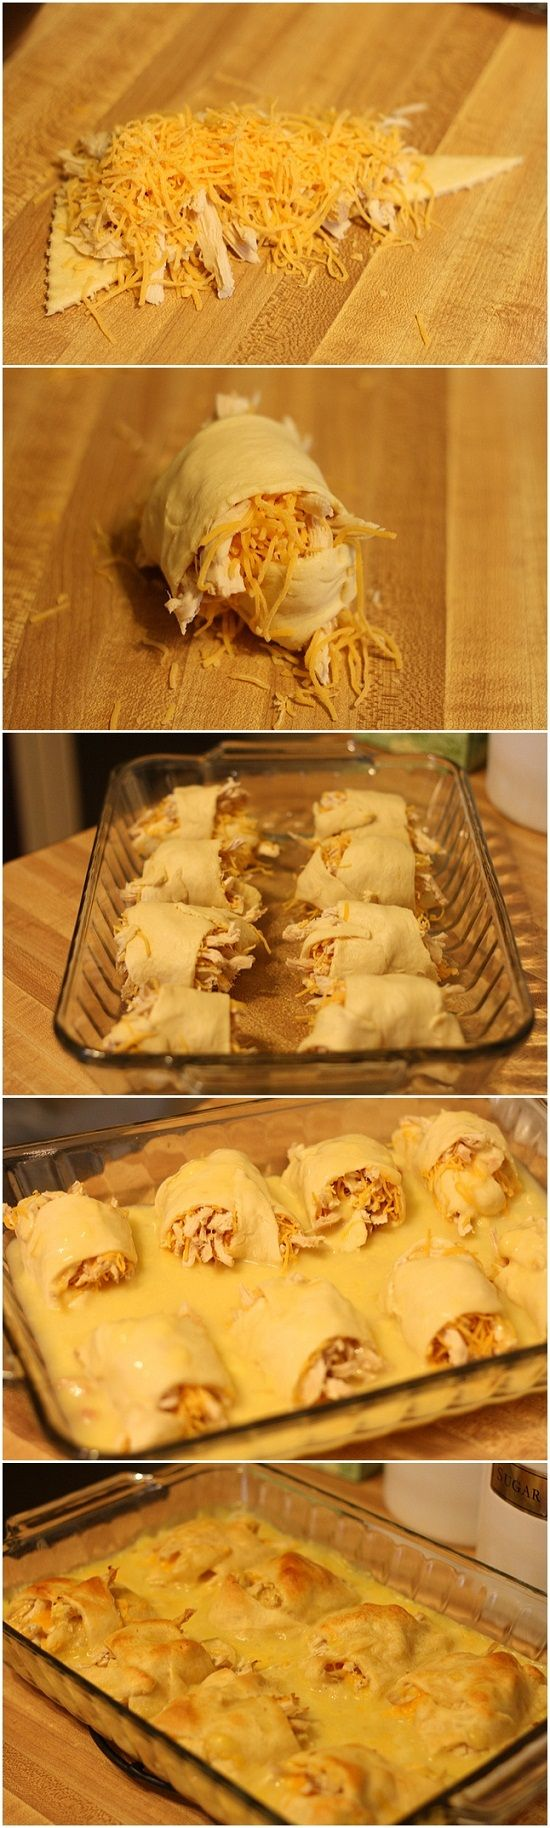 Chicken Roll Ups- super easy, my daughter helped me with them- and very good! I used organic everything except the crescent rolls! Will make over and over!